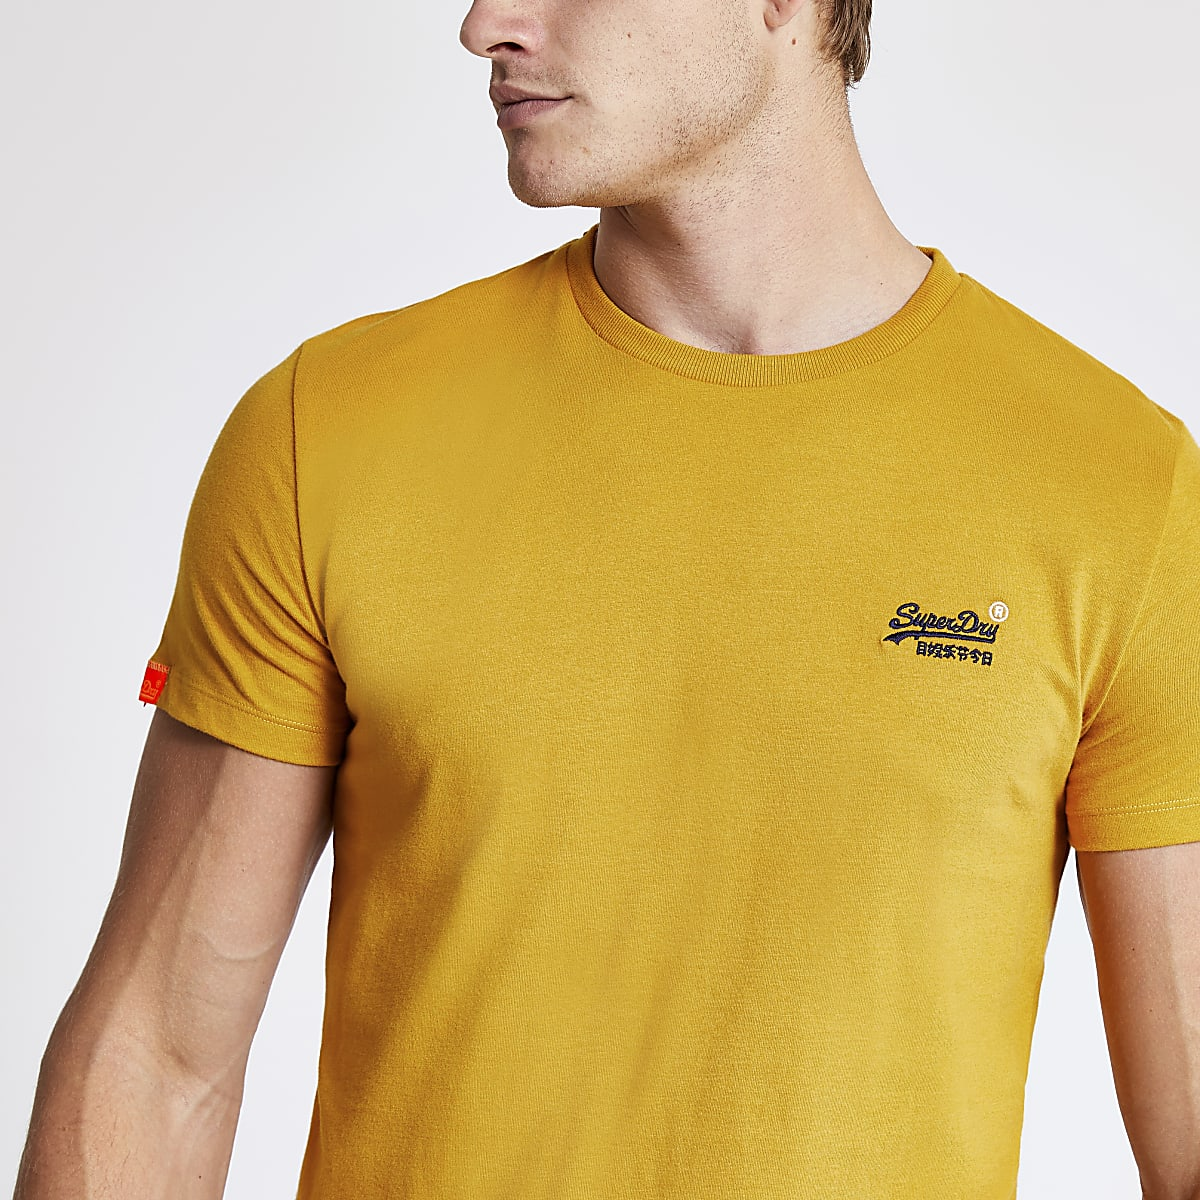 Superdry yellow short sleeve T-shirt